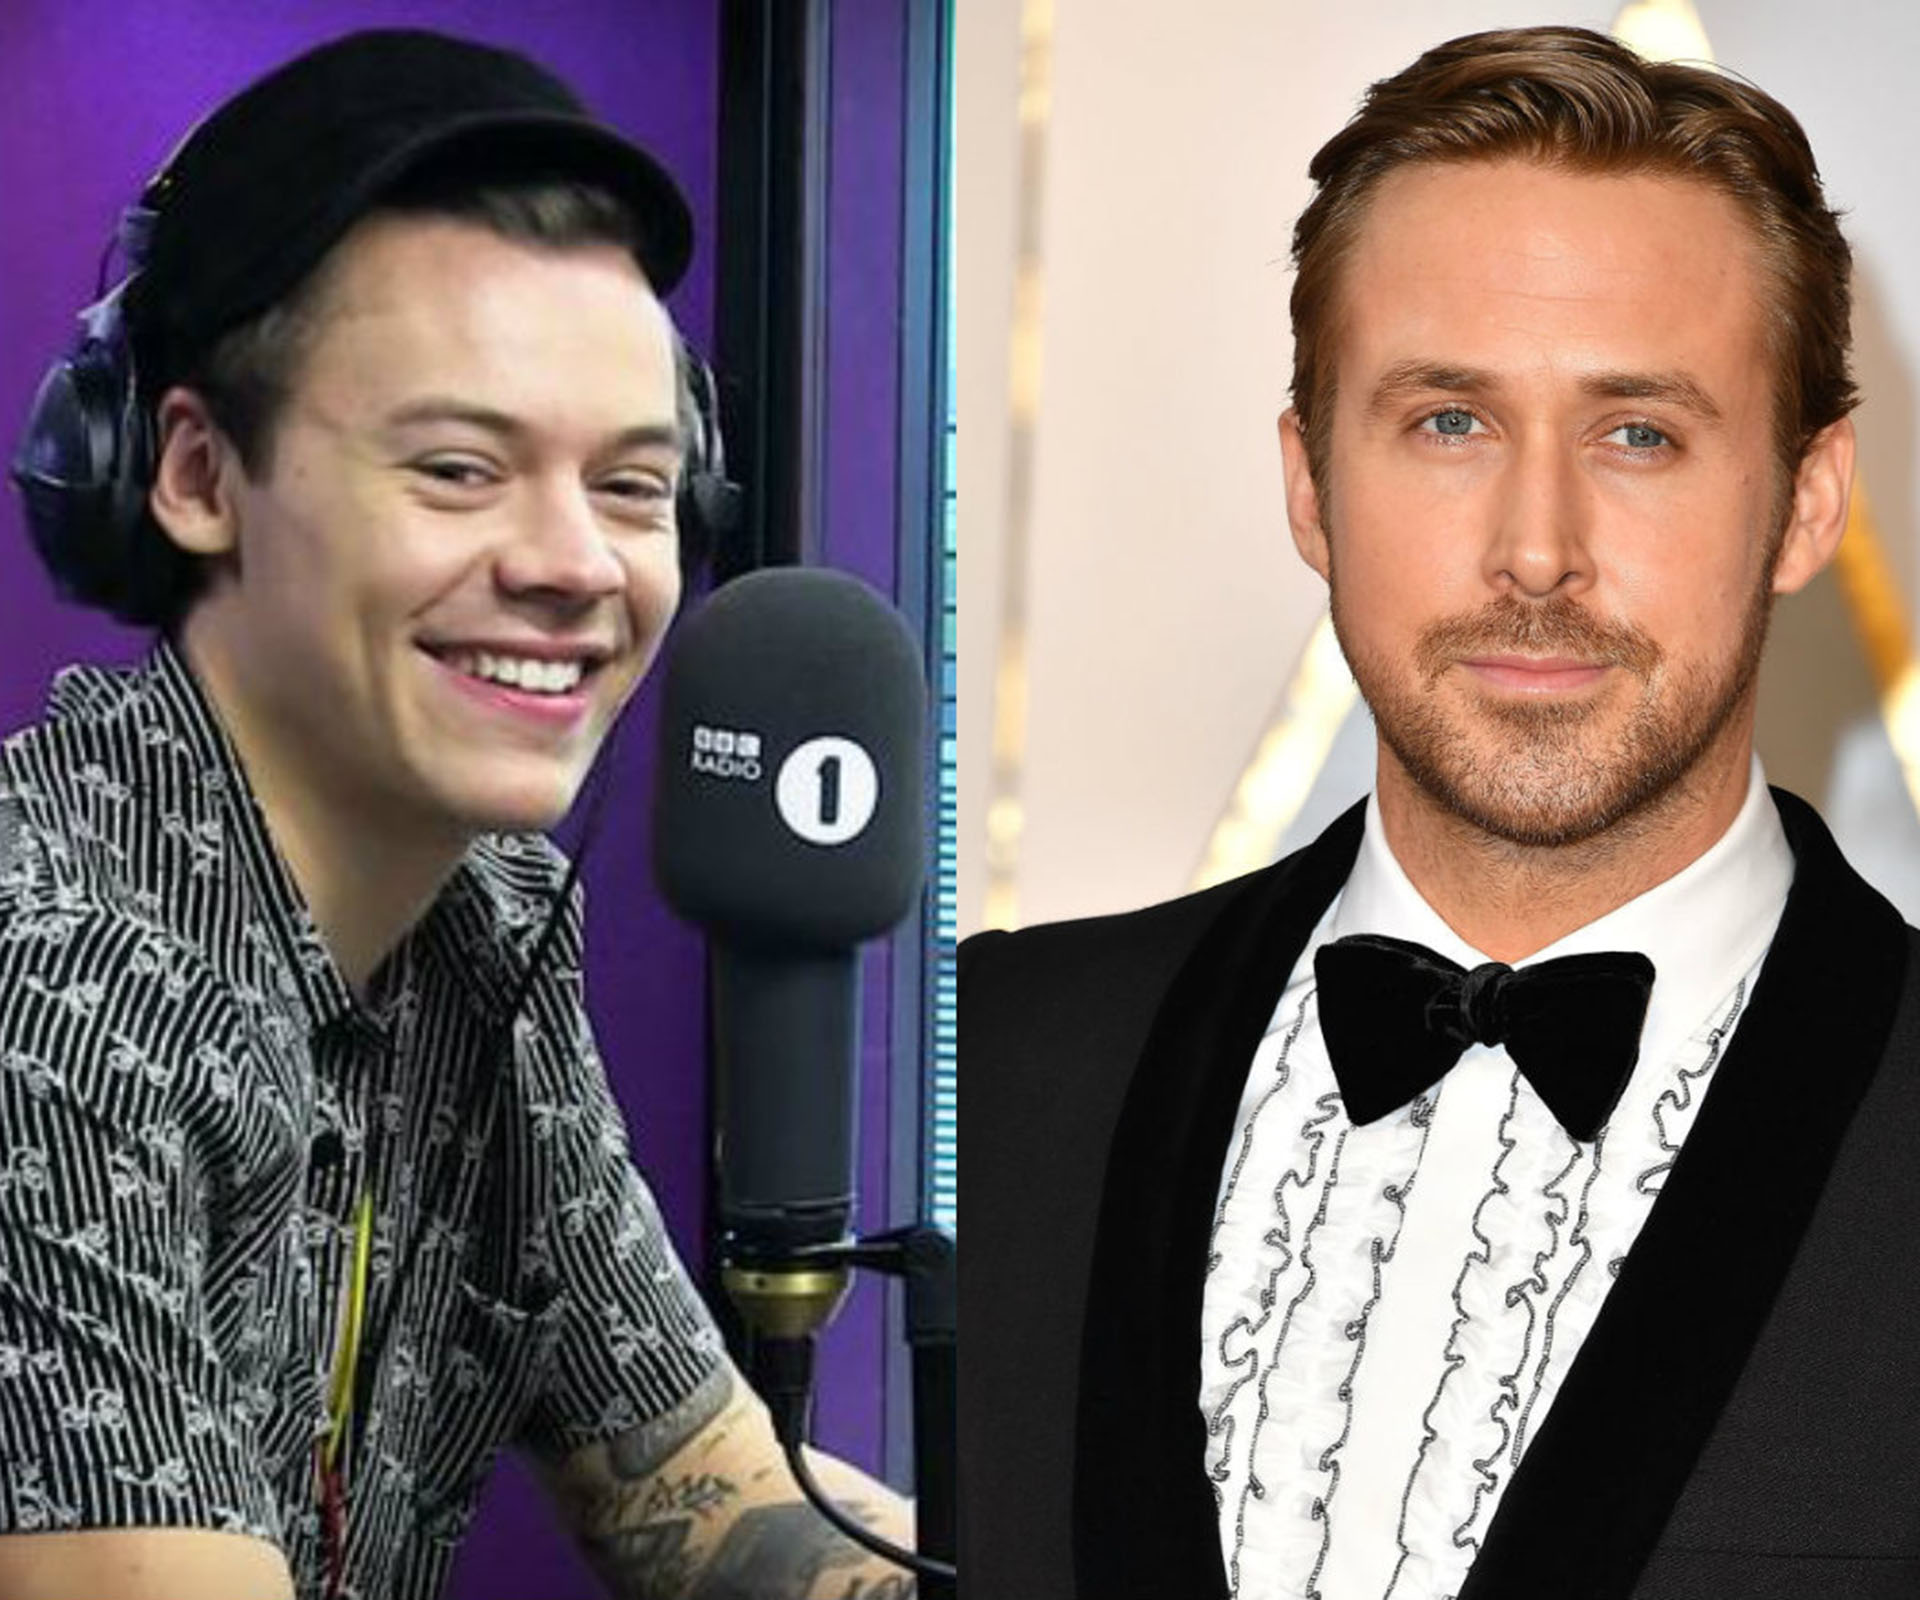 Ryan Gosling Had the Best Response to Making Harry Styles's Heart Race